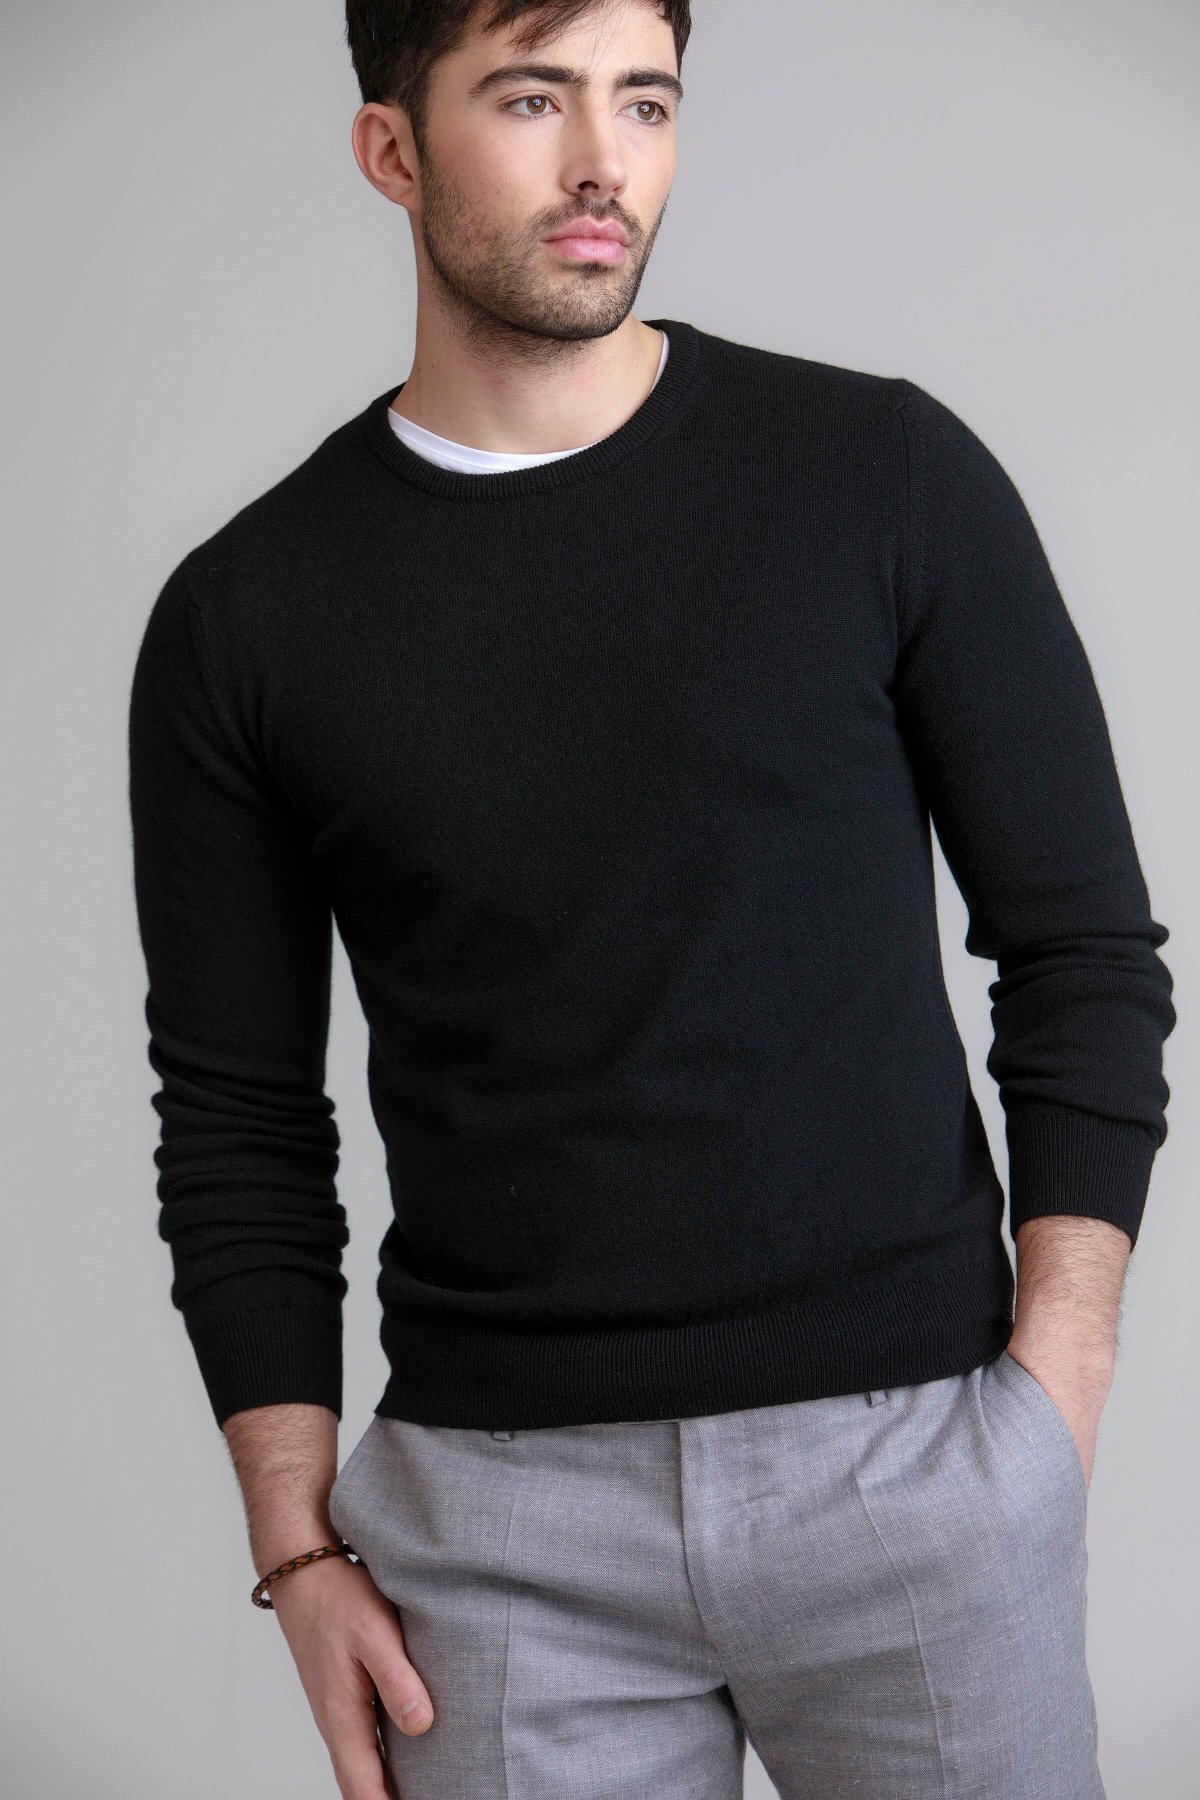 Black cashmere sweater black contemporary round neck mens cashmere sweater in black HZFSFCD